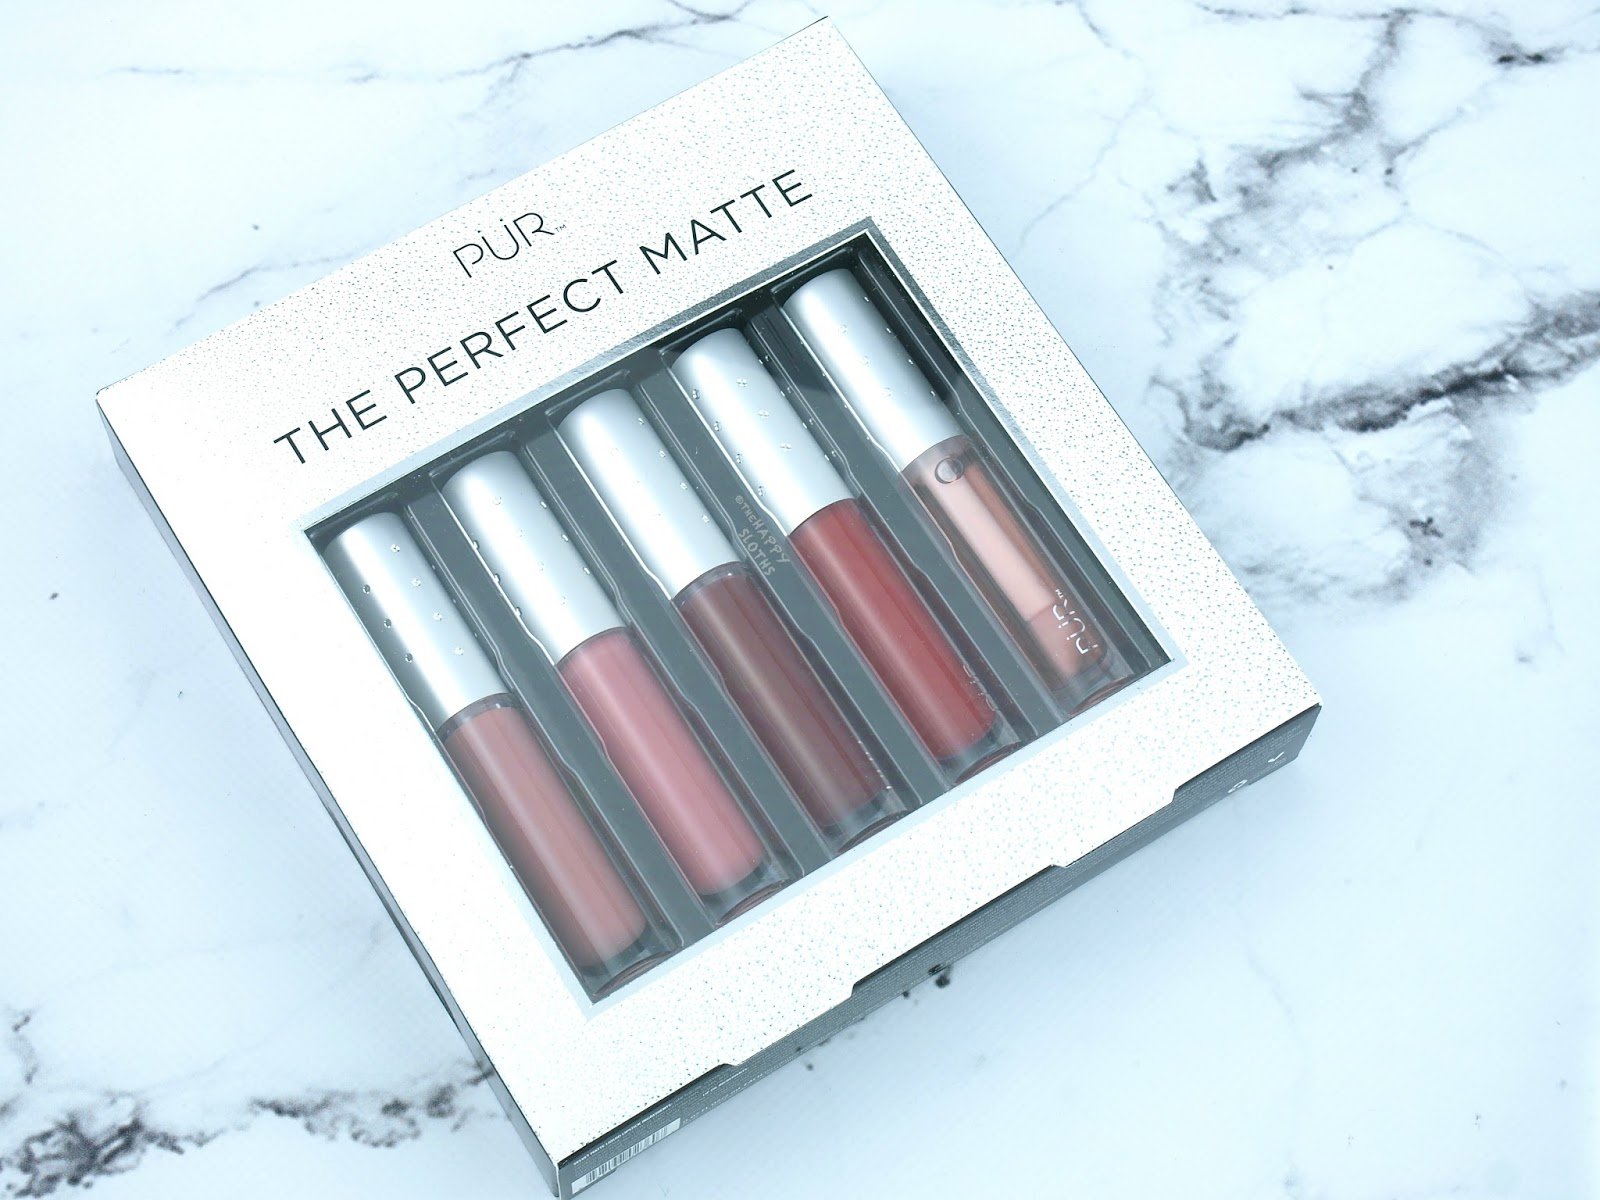 Pur Velvet Liquid Lipstick: Review and Swatches